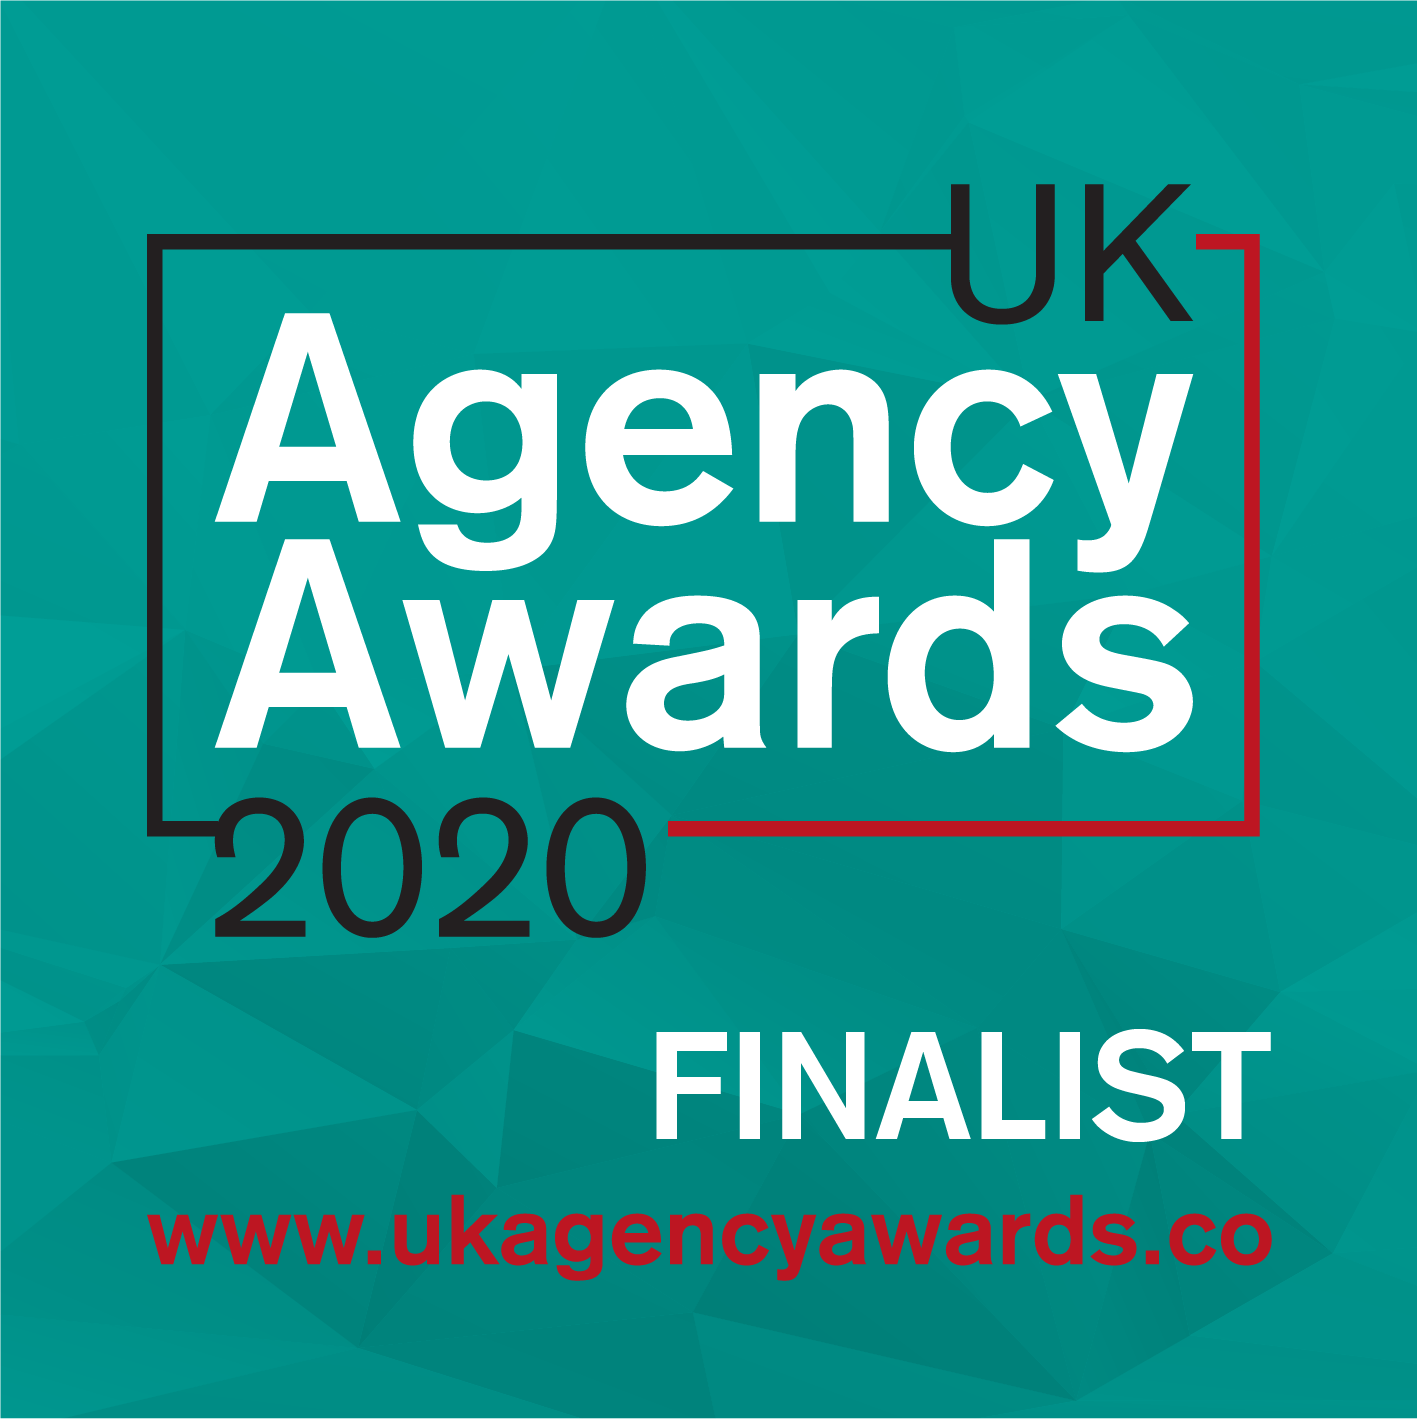 Finalist, 5 Awards Including B2B and PR Agency of the Year, UK Agency Awards 2020